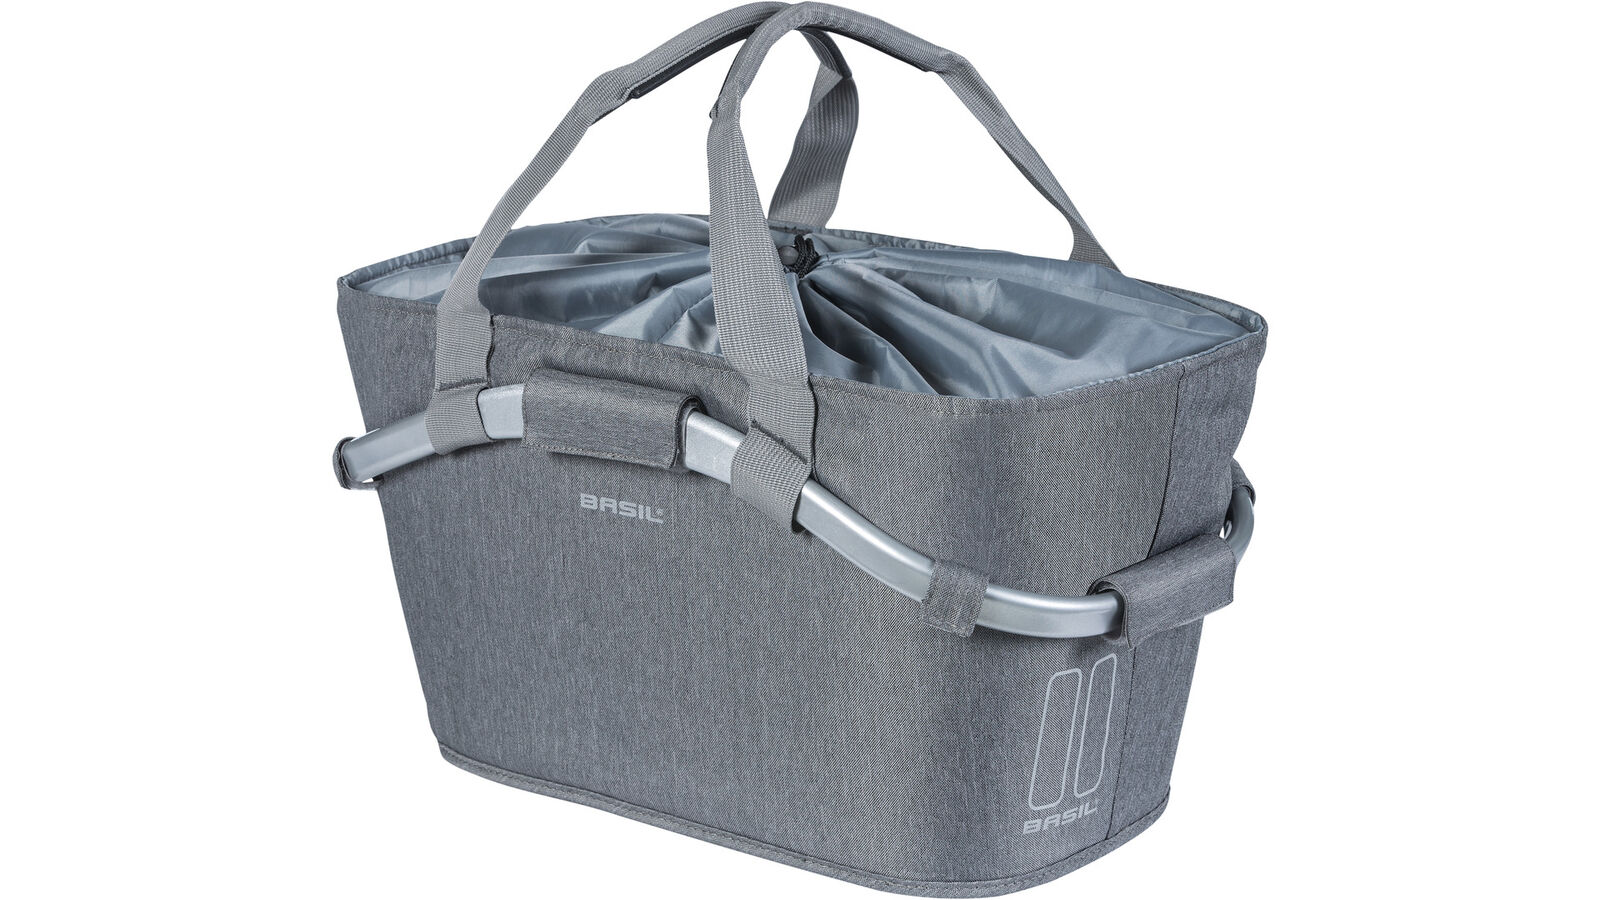 0.838.0065 Basil Cestino Bicicletta Posteriore 2day carry all rear basket 50x28x26